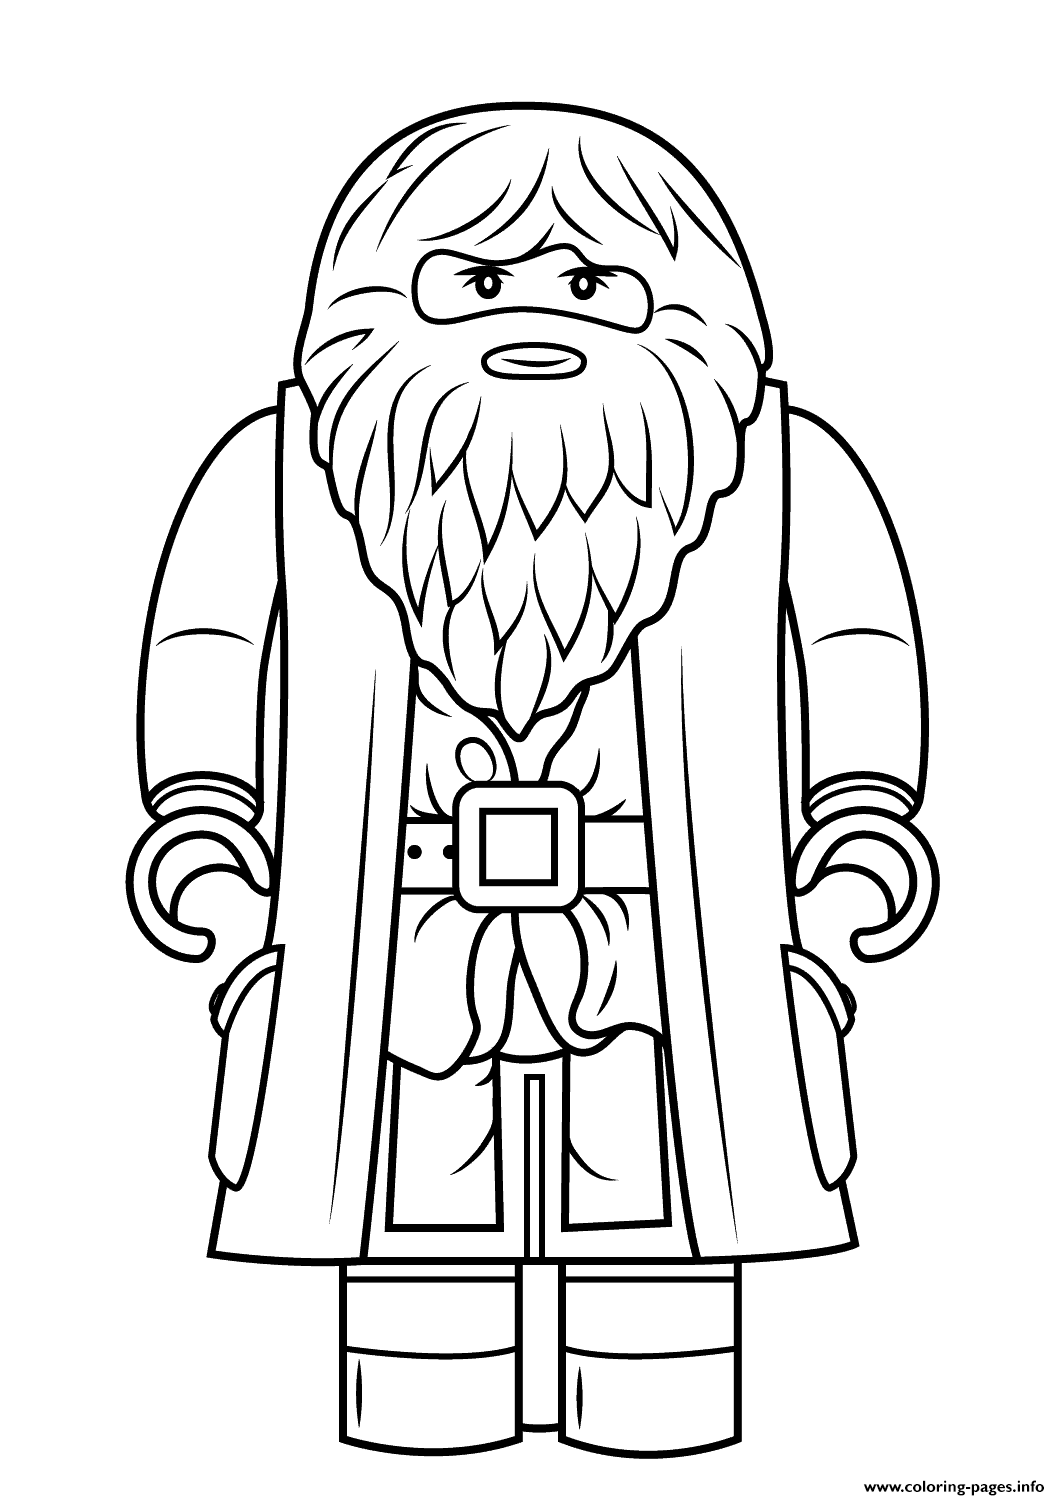 Lego Rubeus Hagrid Minifigure Harry Potter Coloring Pages Print Download